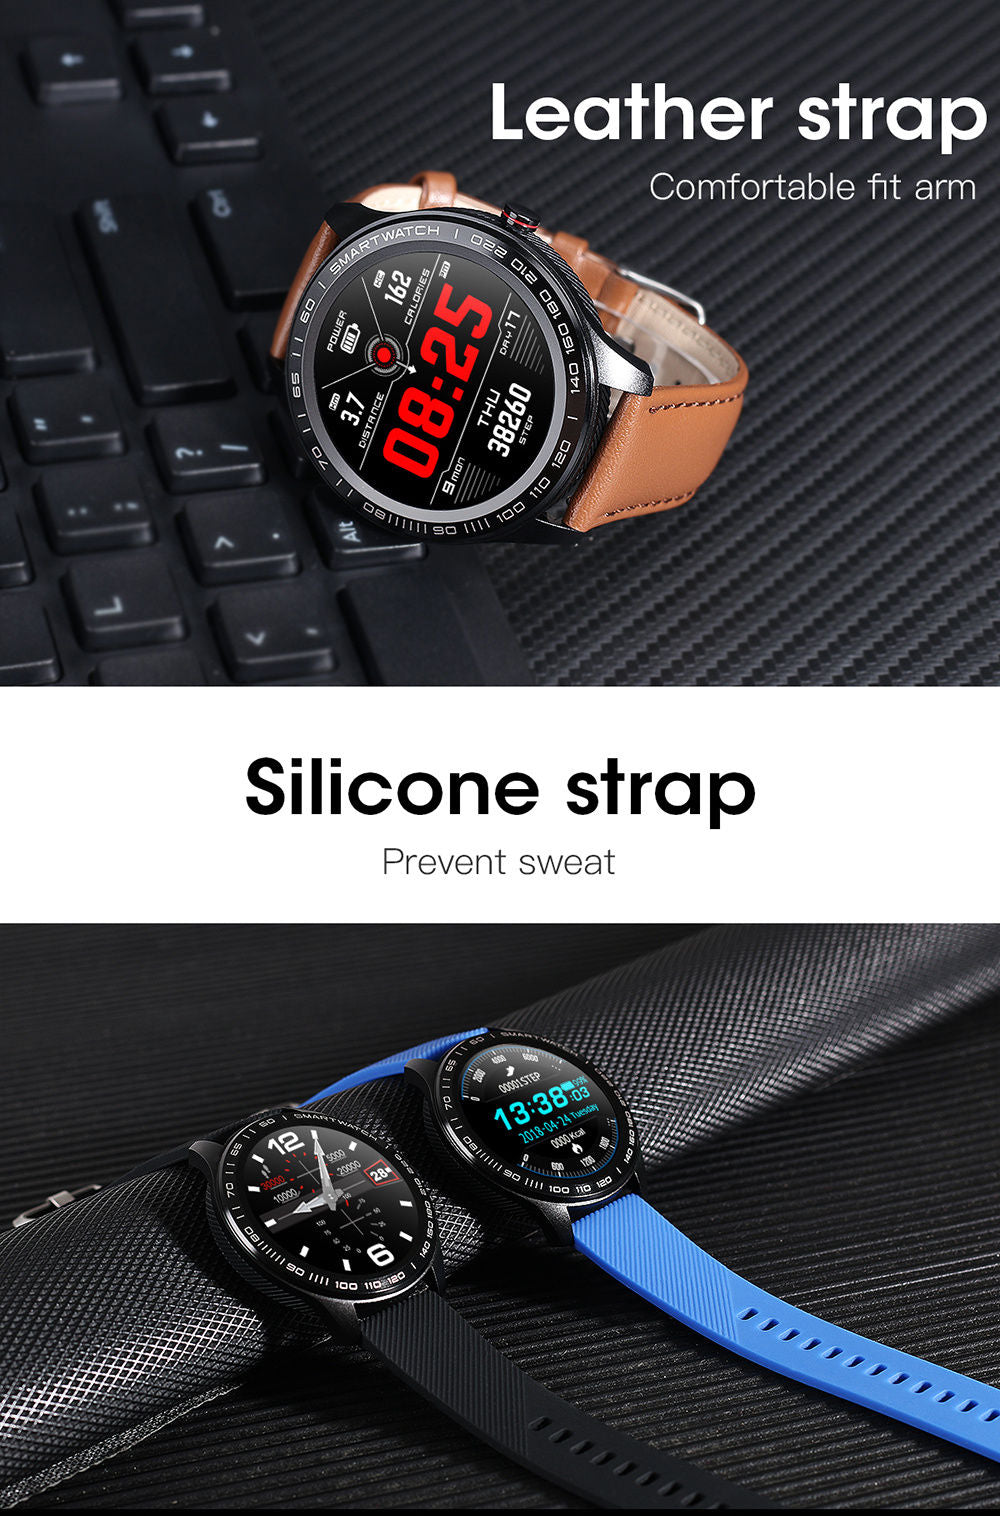 detailed description of L9 smart watch 14